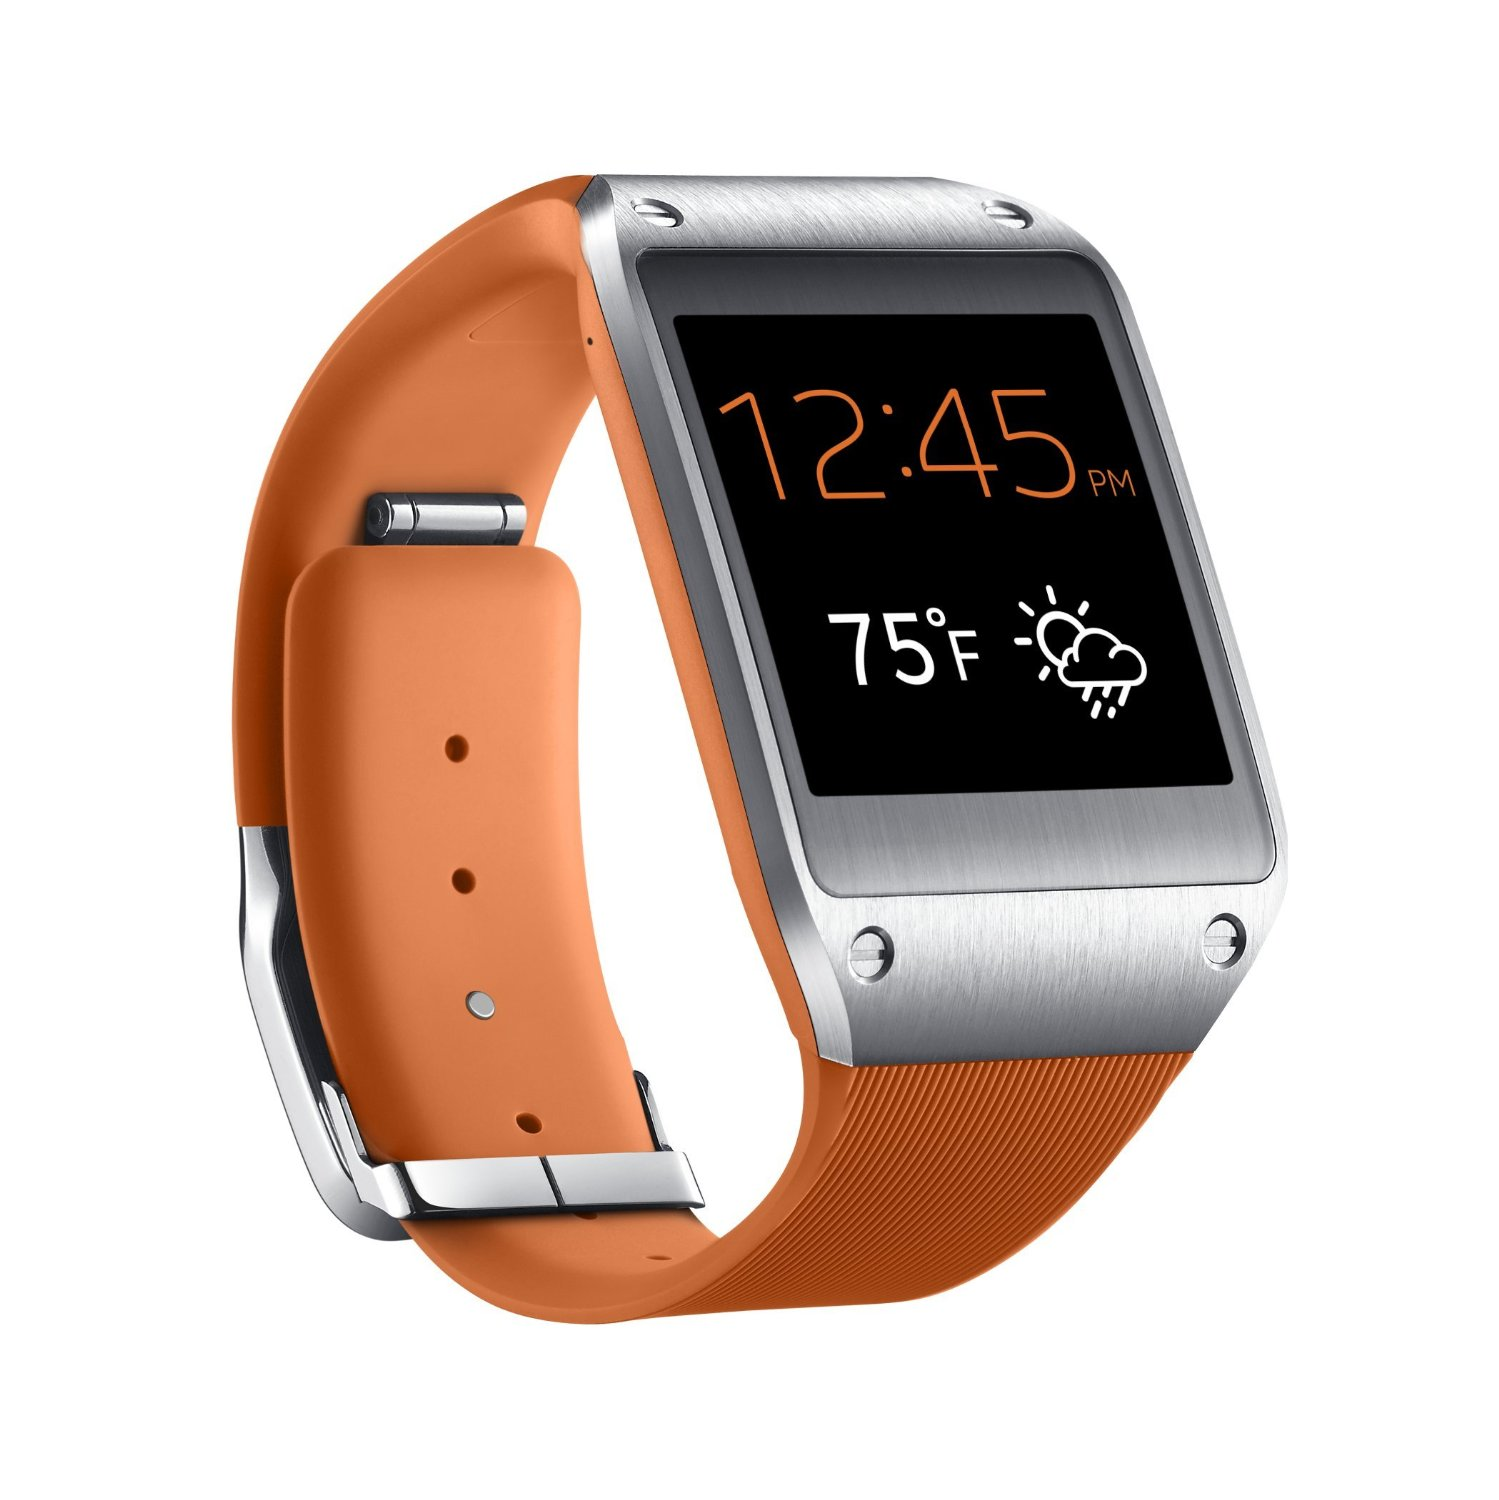 samsung galaxy gear smartwatch. Black Bedroom Furniture Sets. Home Design Ideas